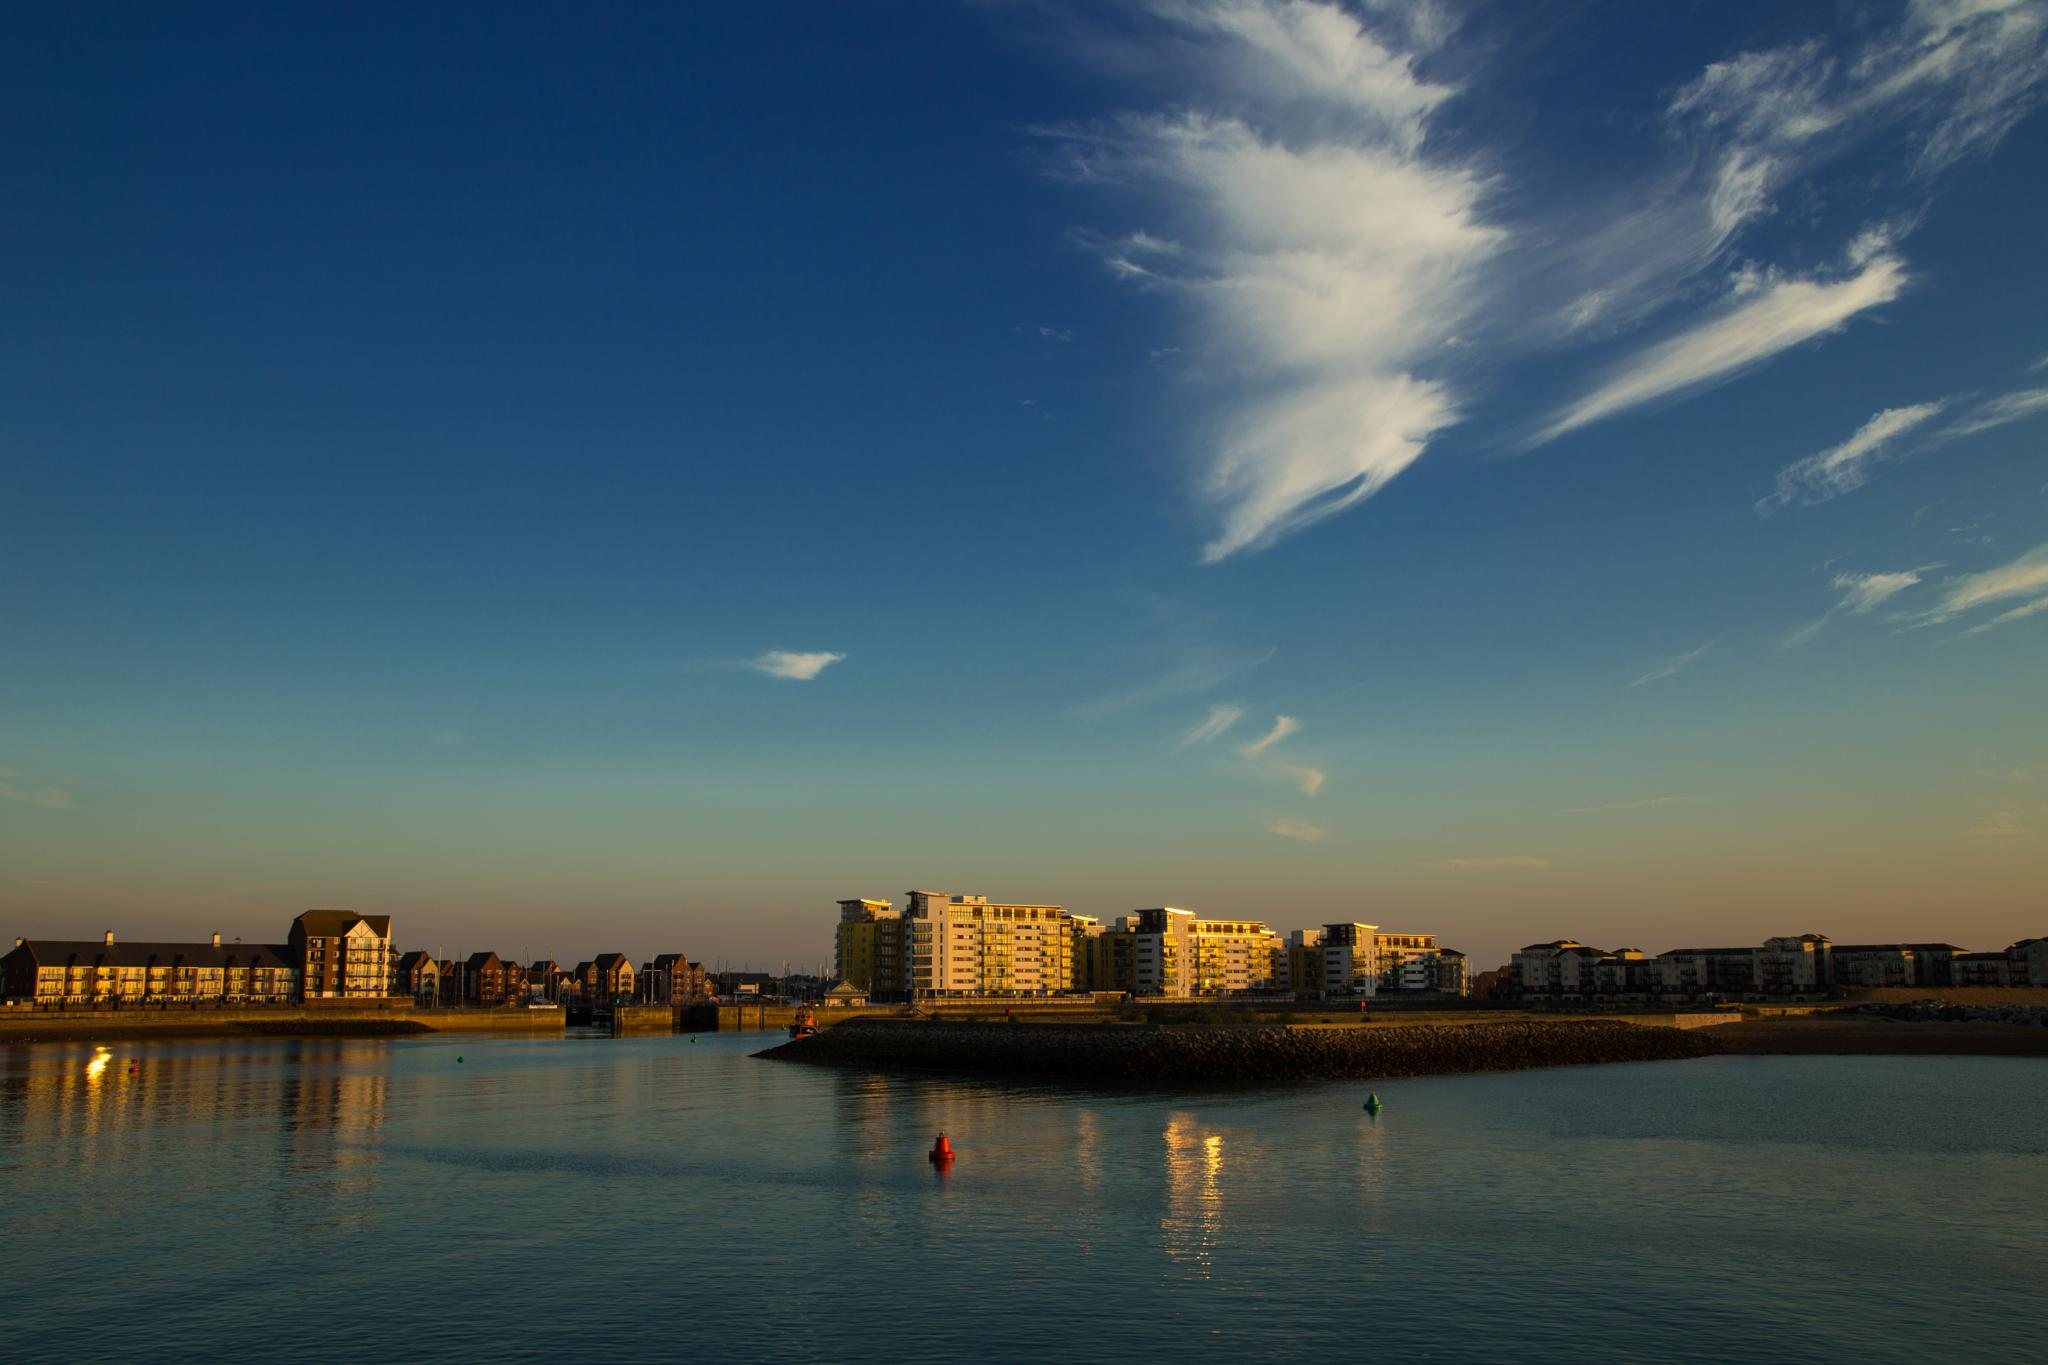 eastbourne marina  by eddie.powell.9809